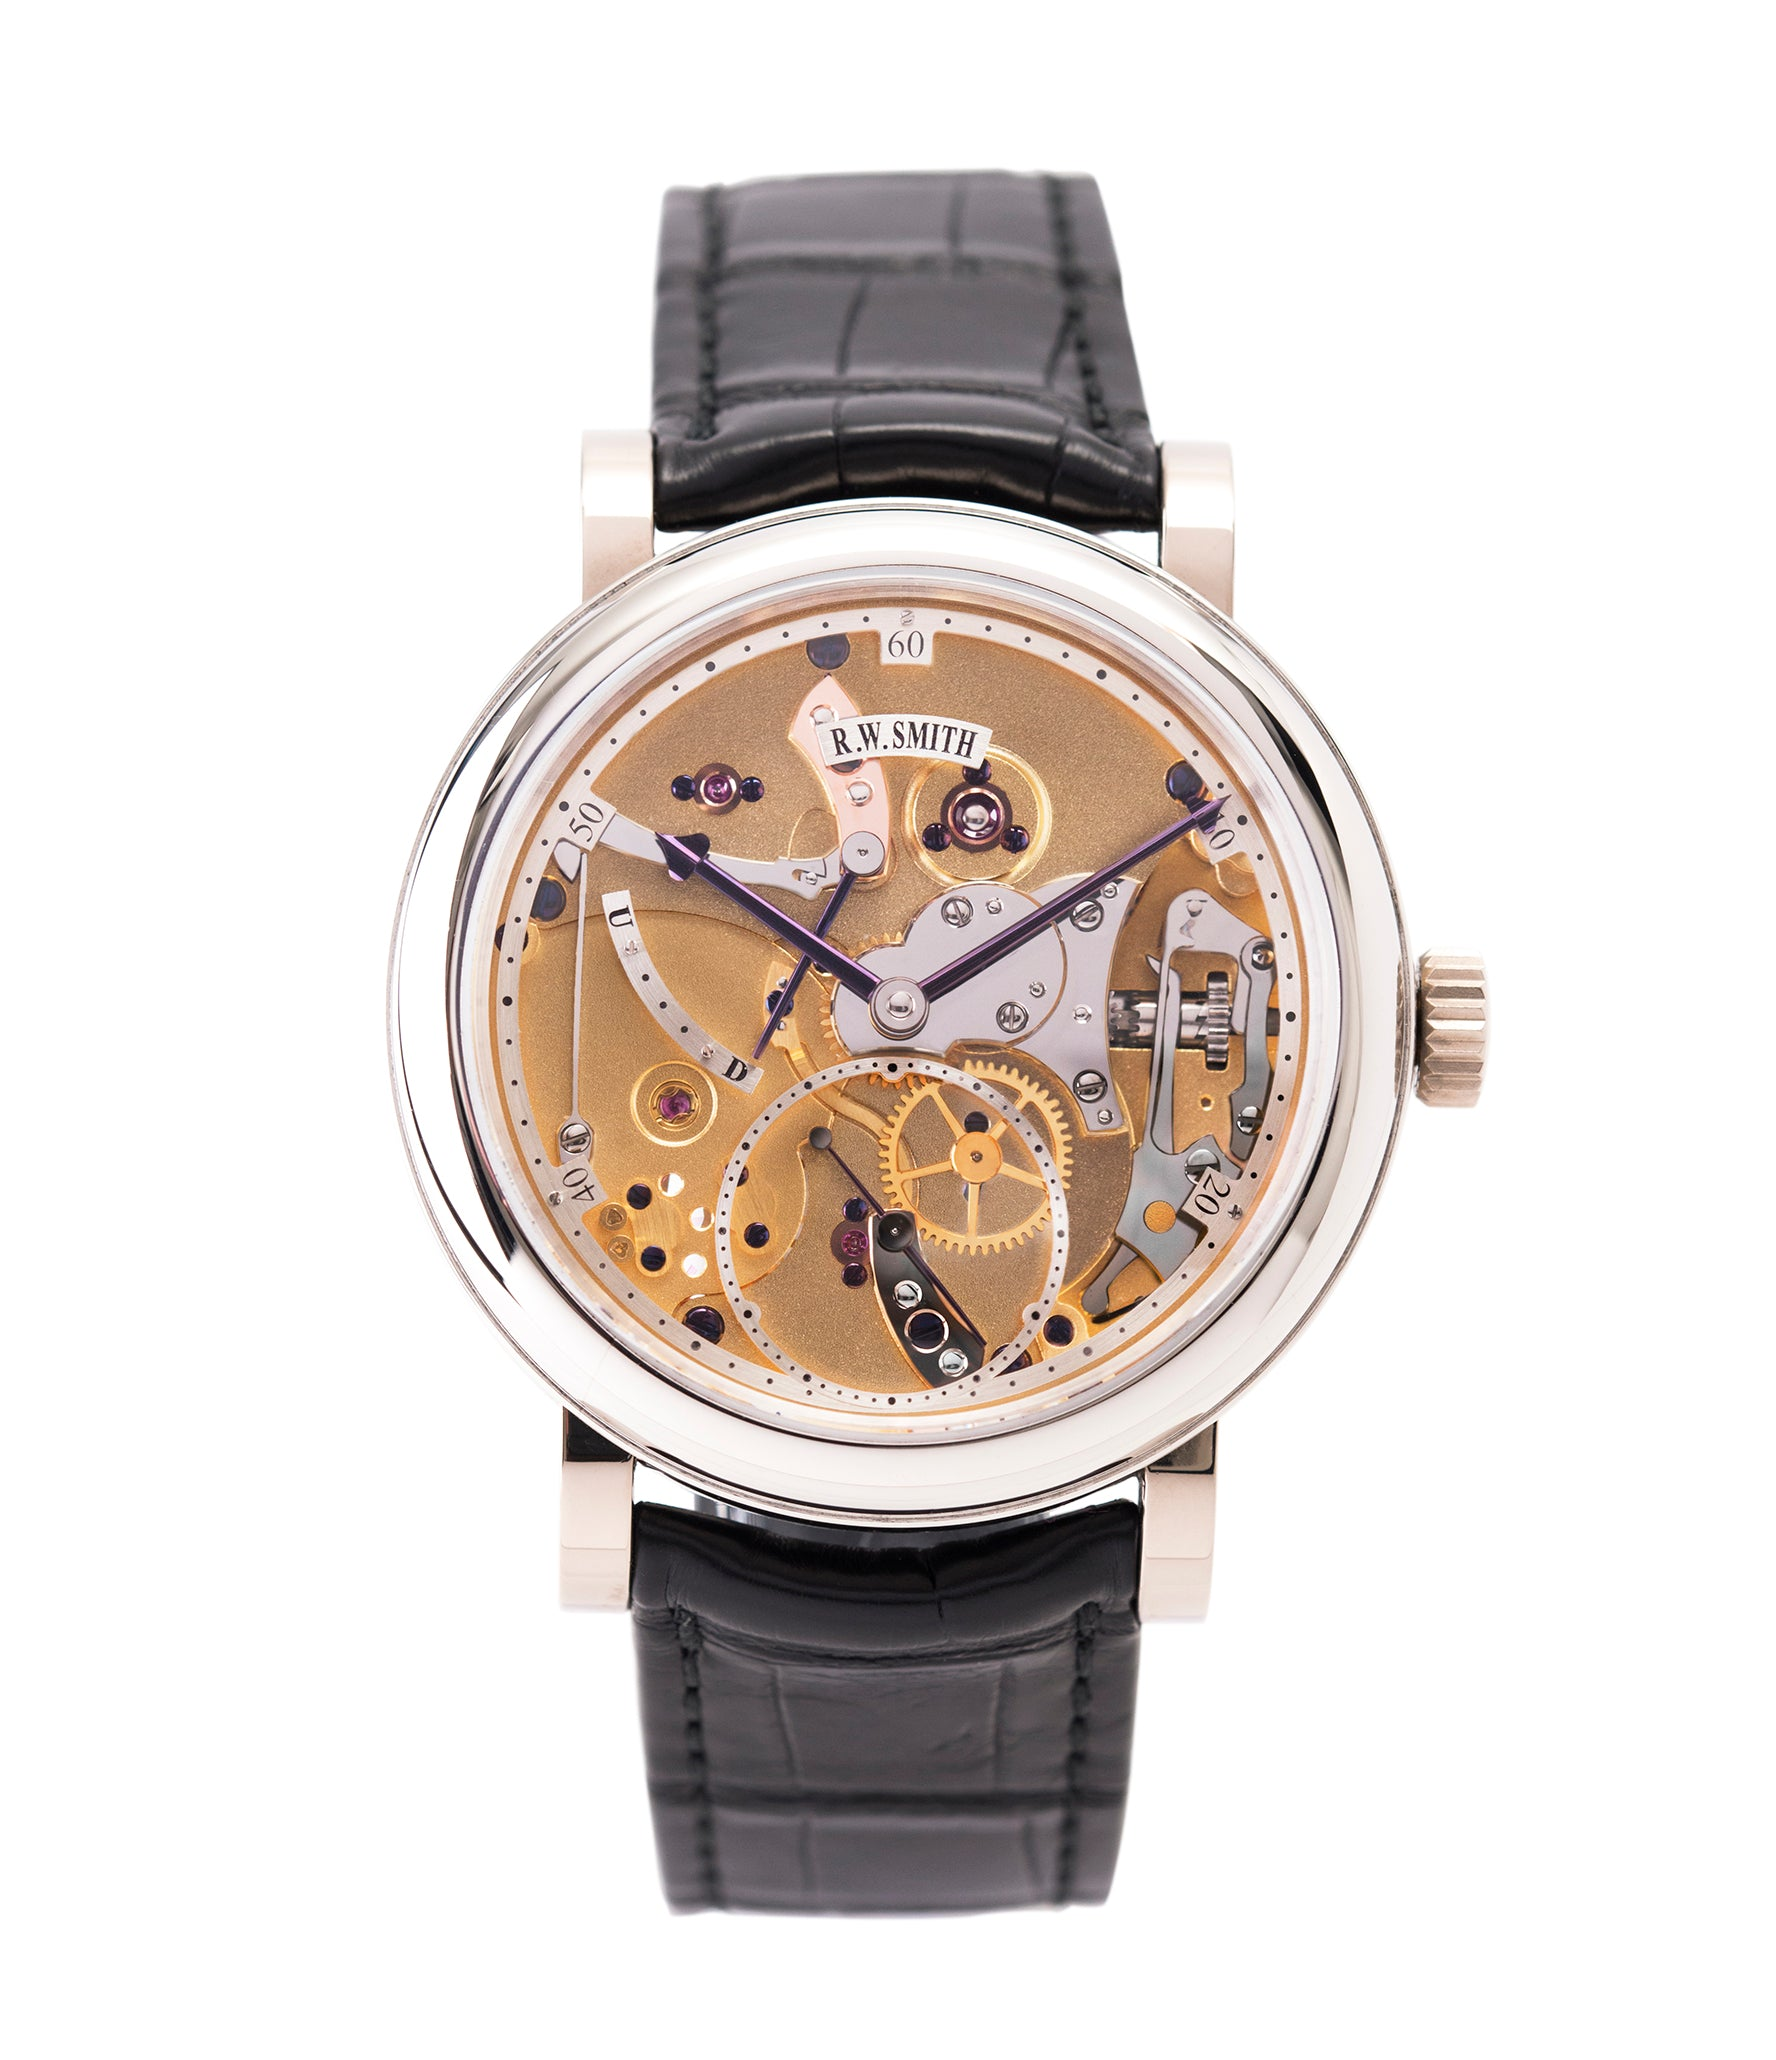 buy Roger W. Smith Series 2 Open Dial white gold rare hand-made dress watch for sale online at A Collected Man London UK specialist of rare independent watches